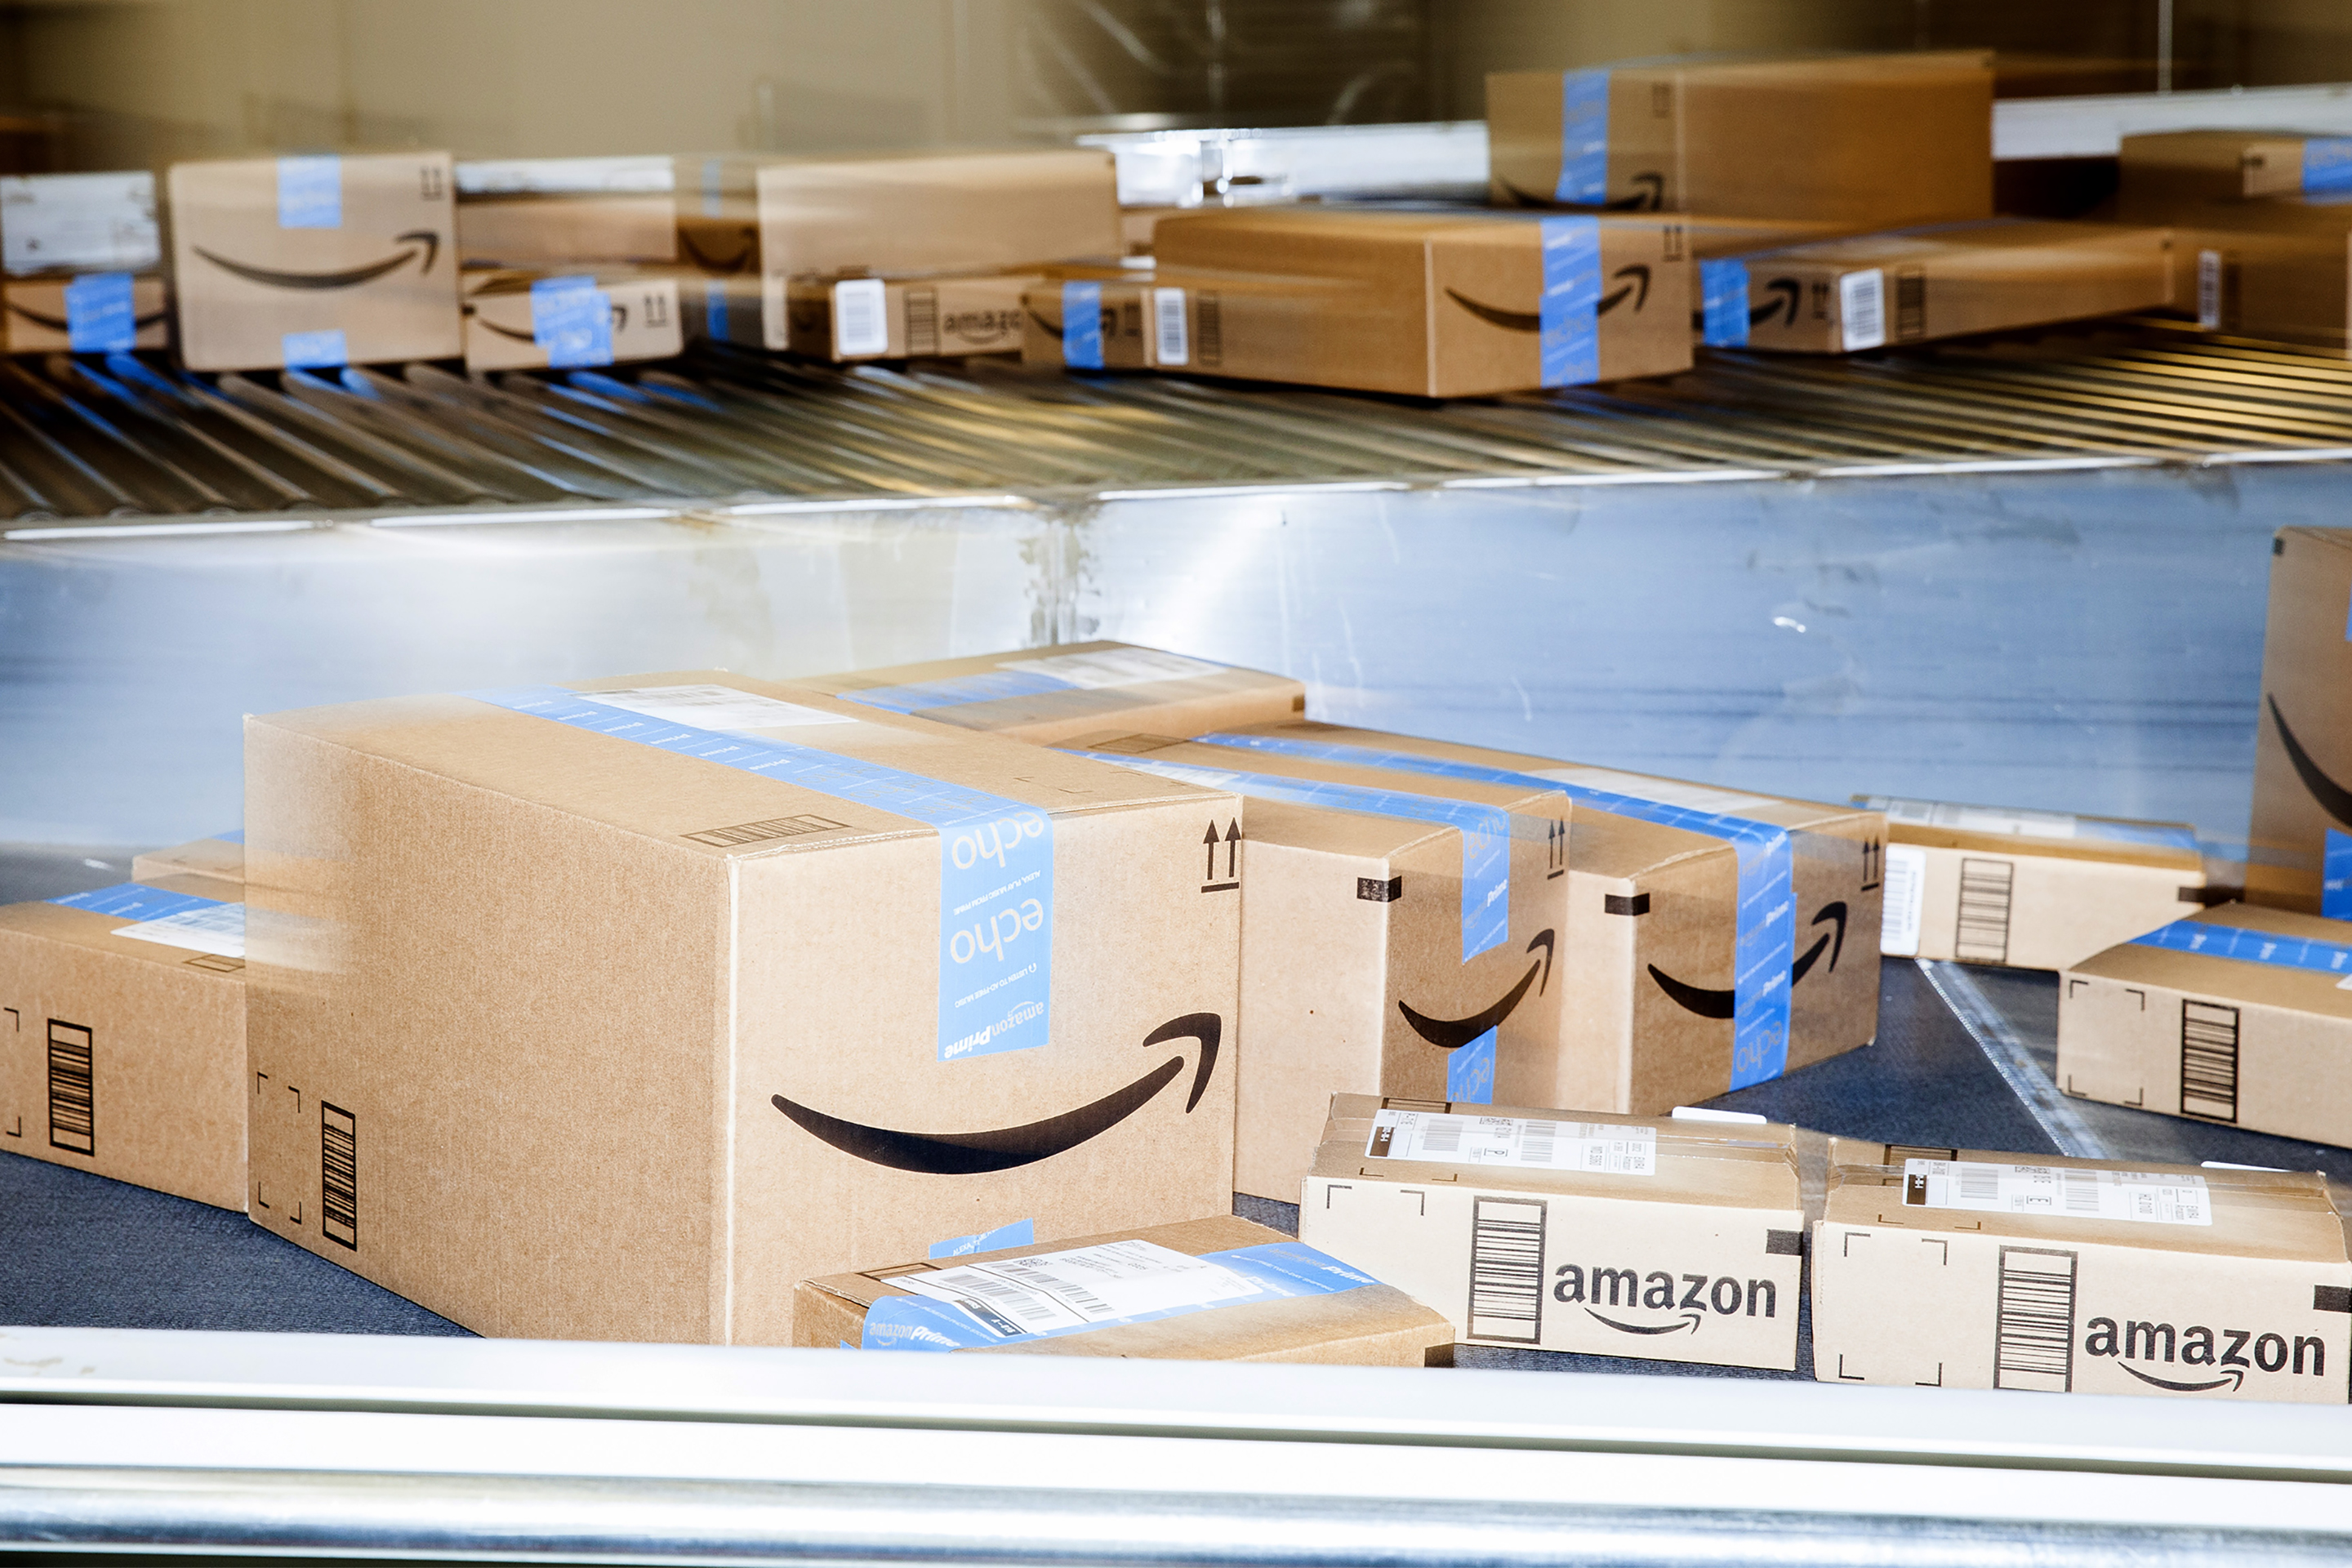 amazon-boxes-delivery